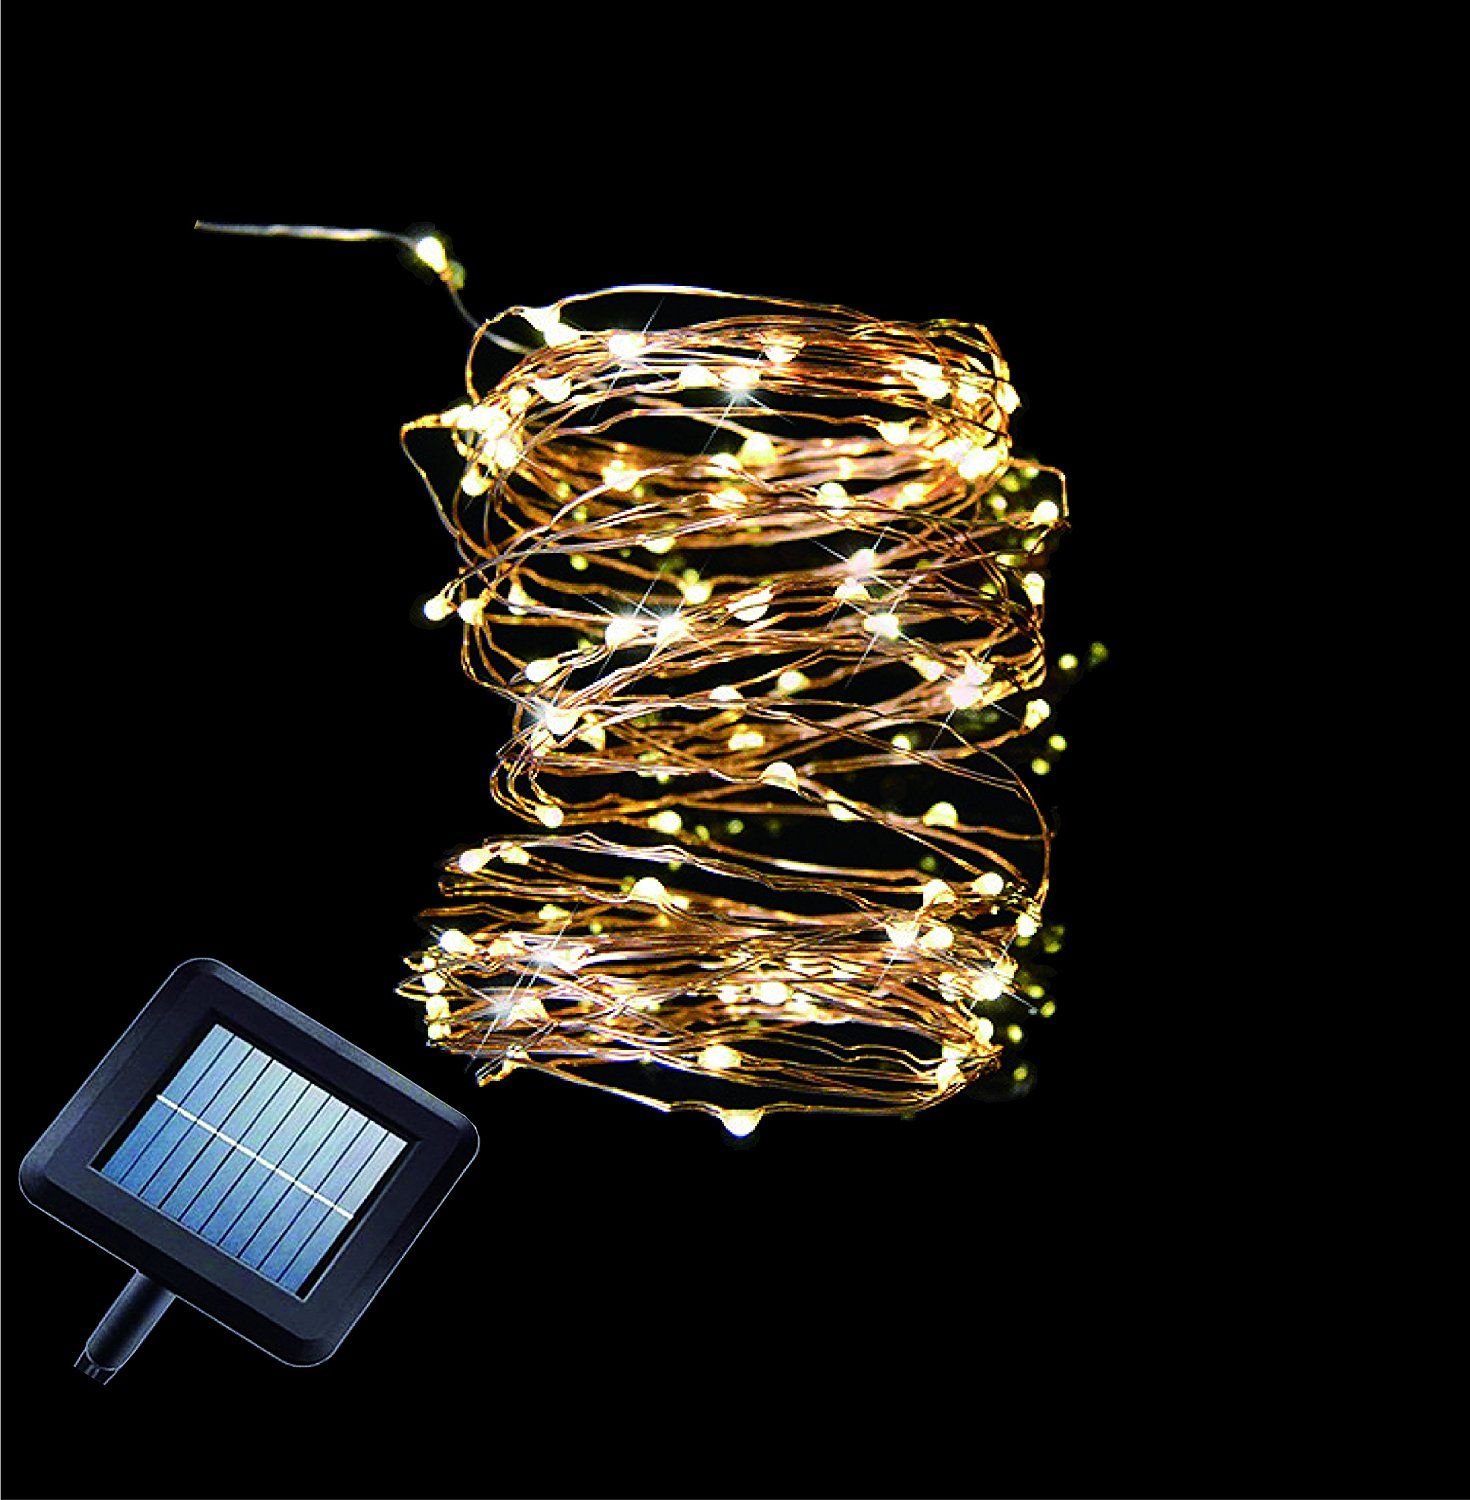 Solar String Lights For Garden : Solar lights outdoor String Lights - Led Christmas Lights, 33 ft Copper Wire, 100 LEDs solar ...